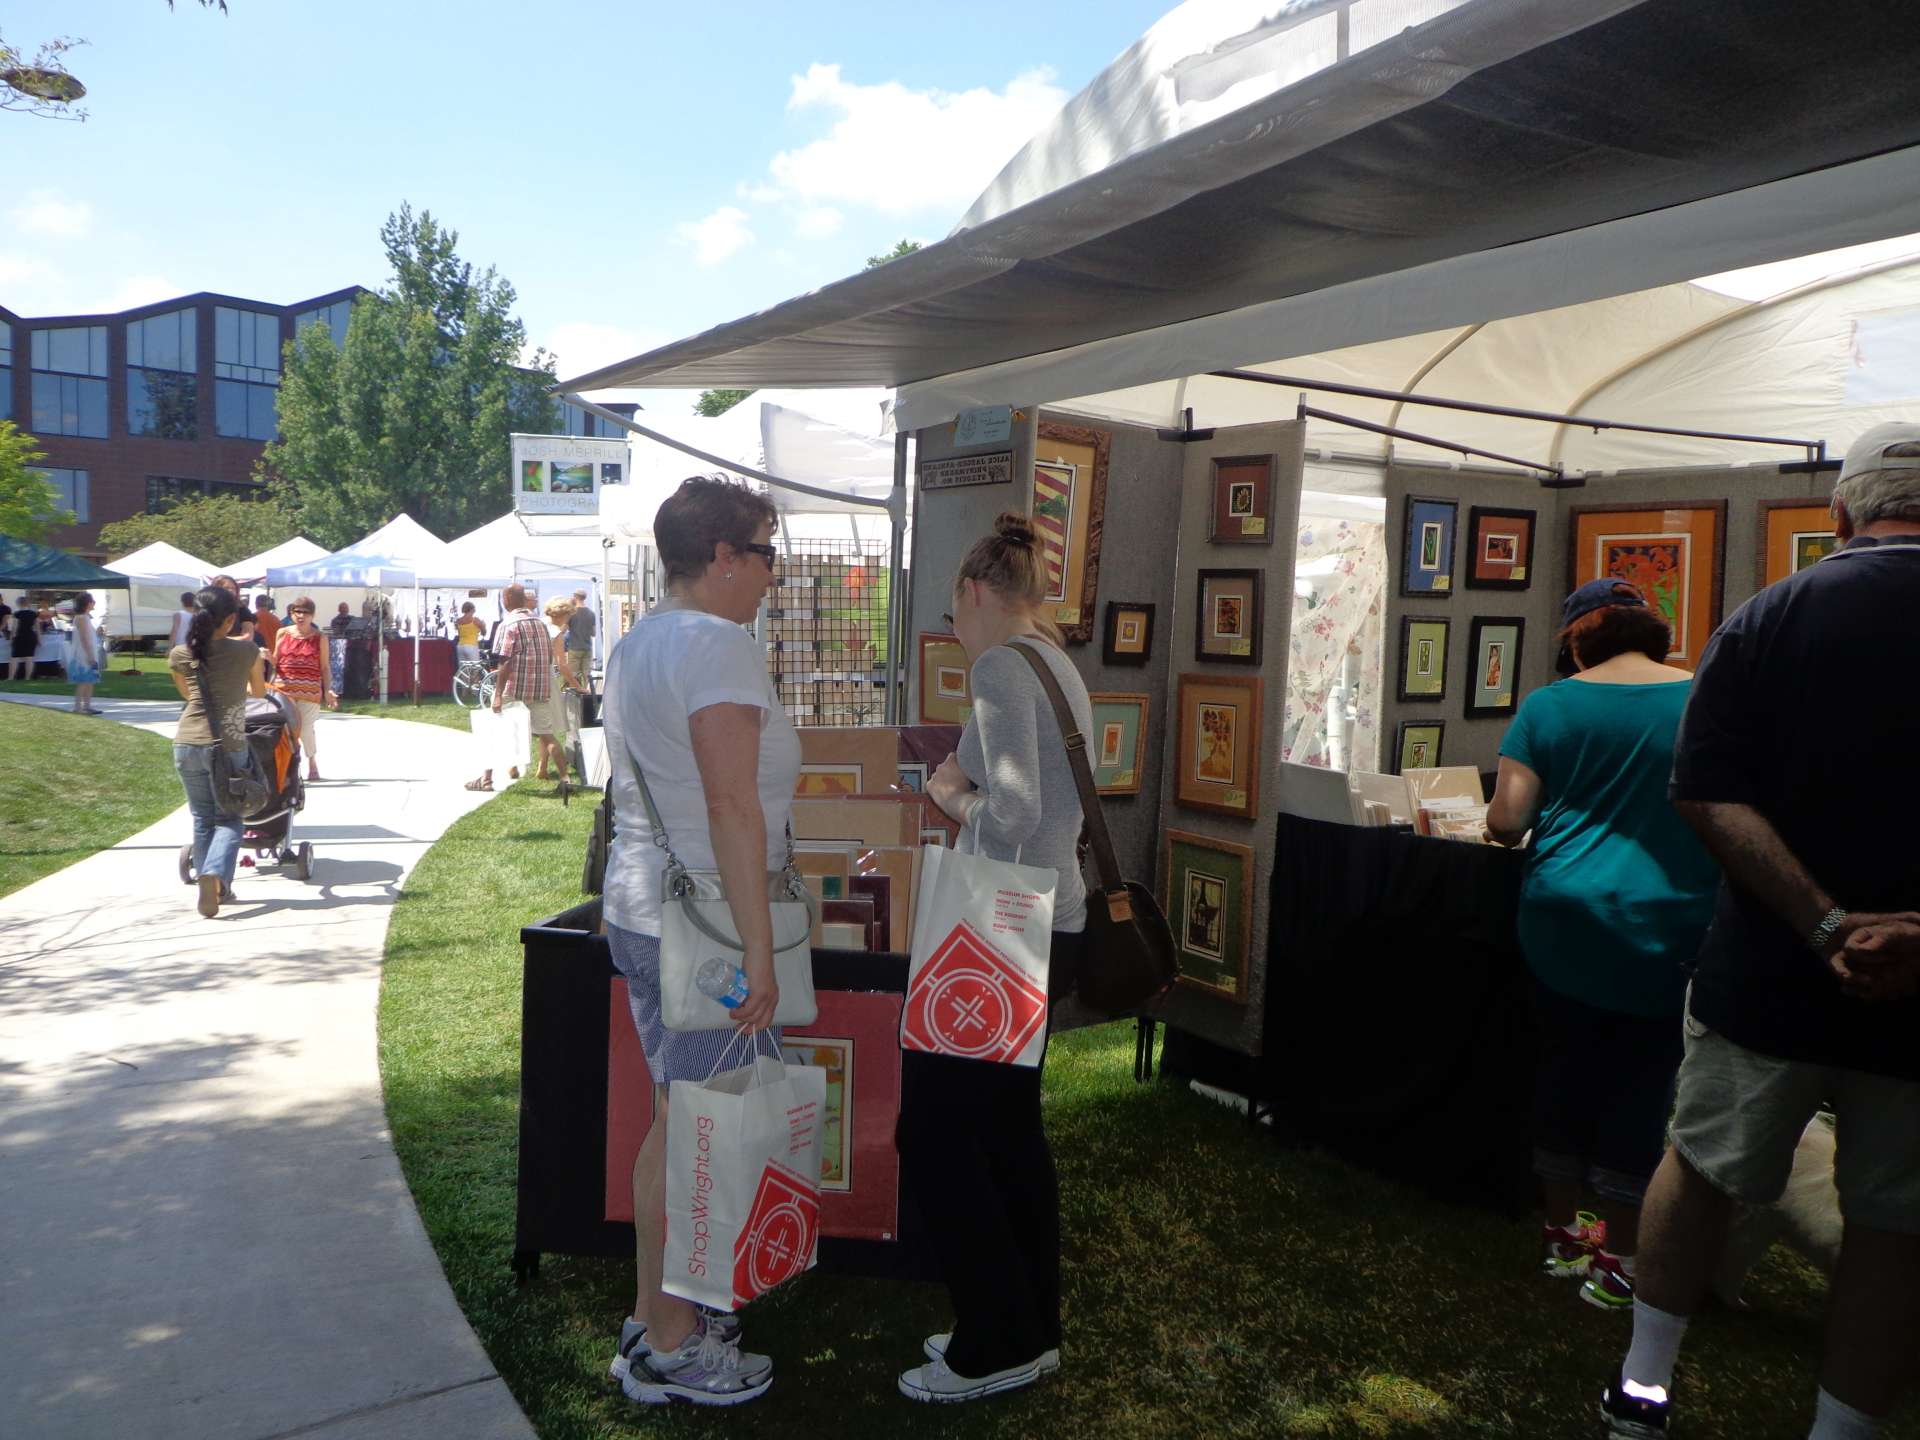 Patrons shopping the show